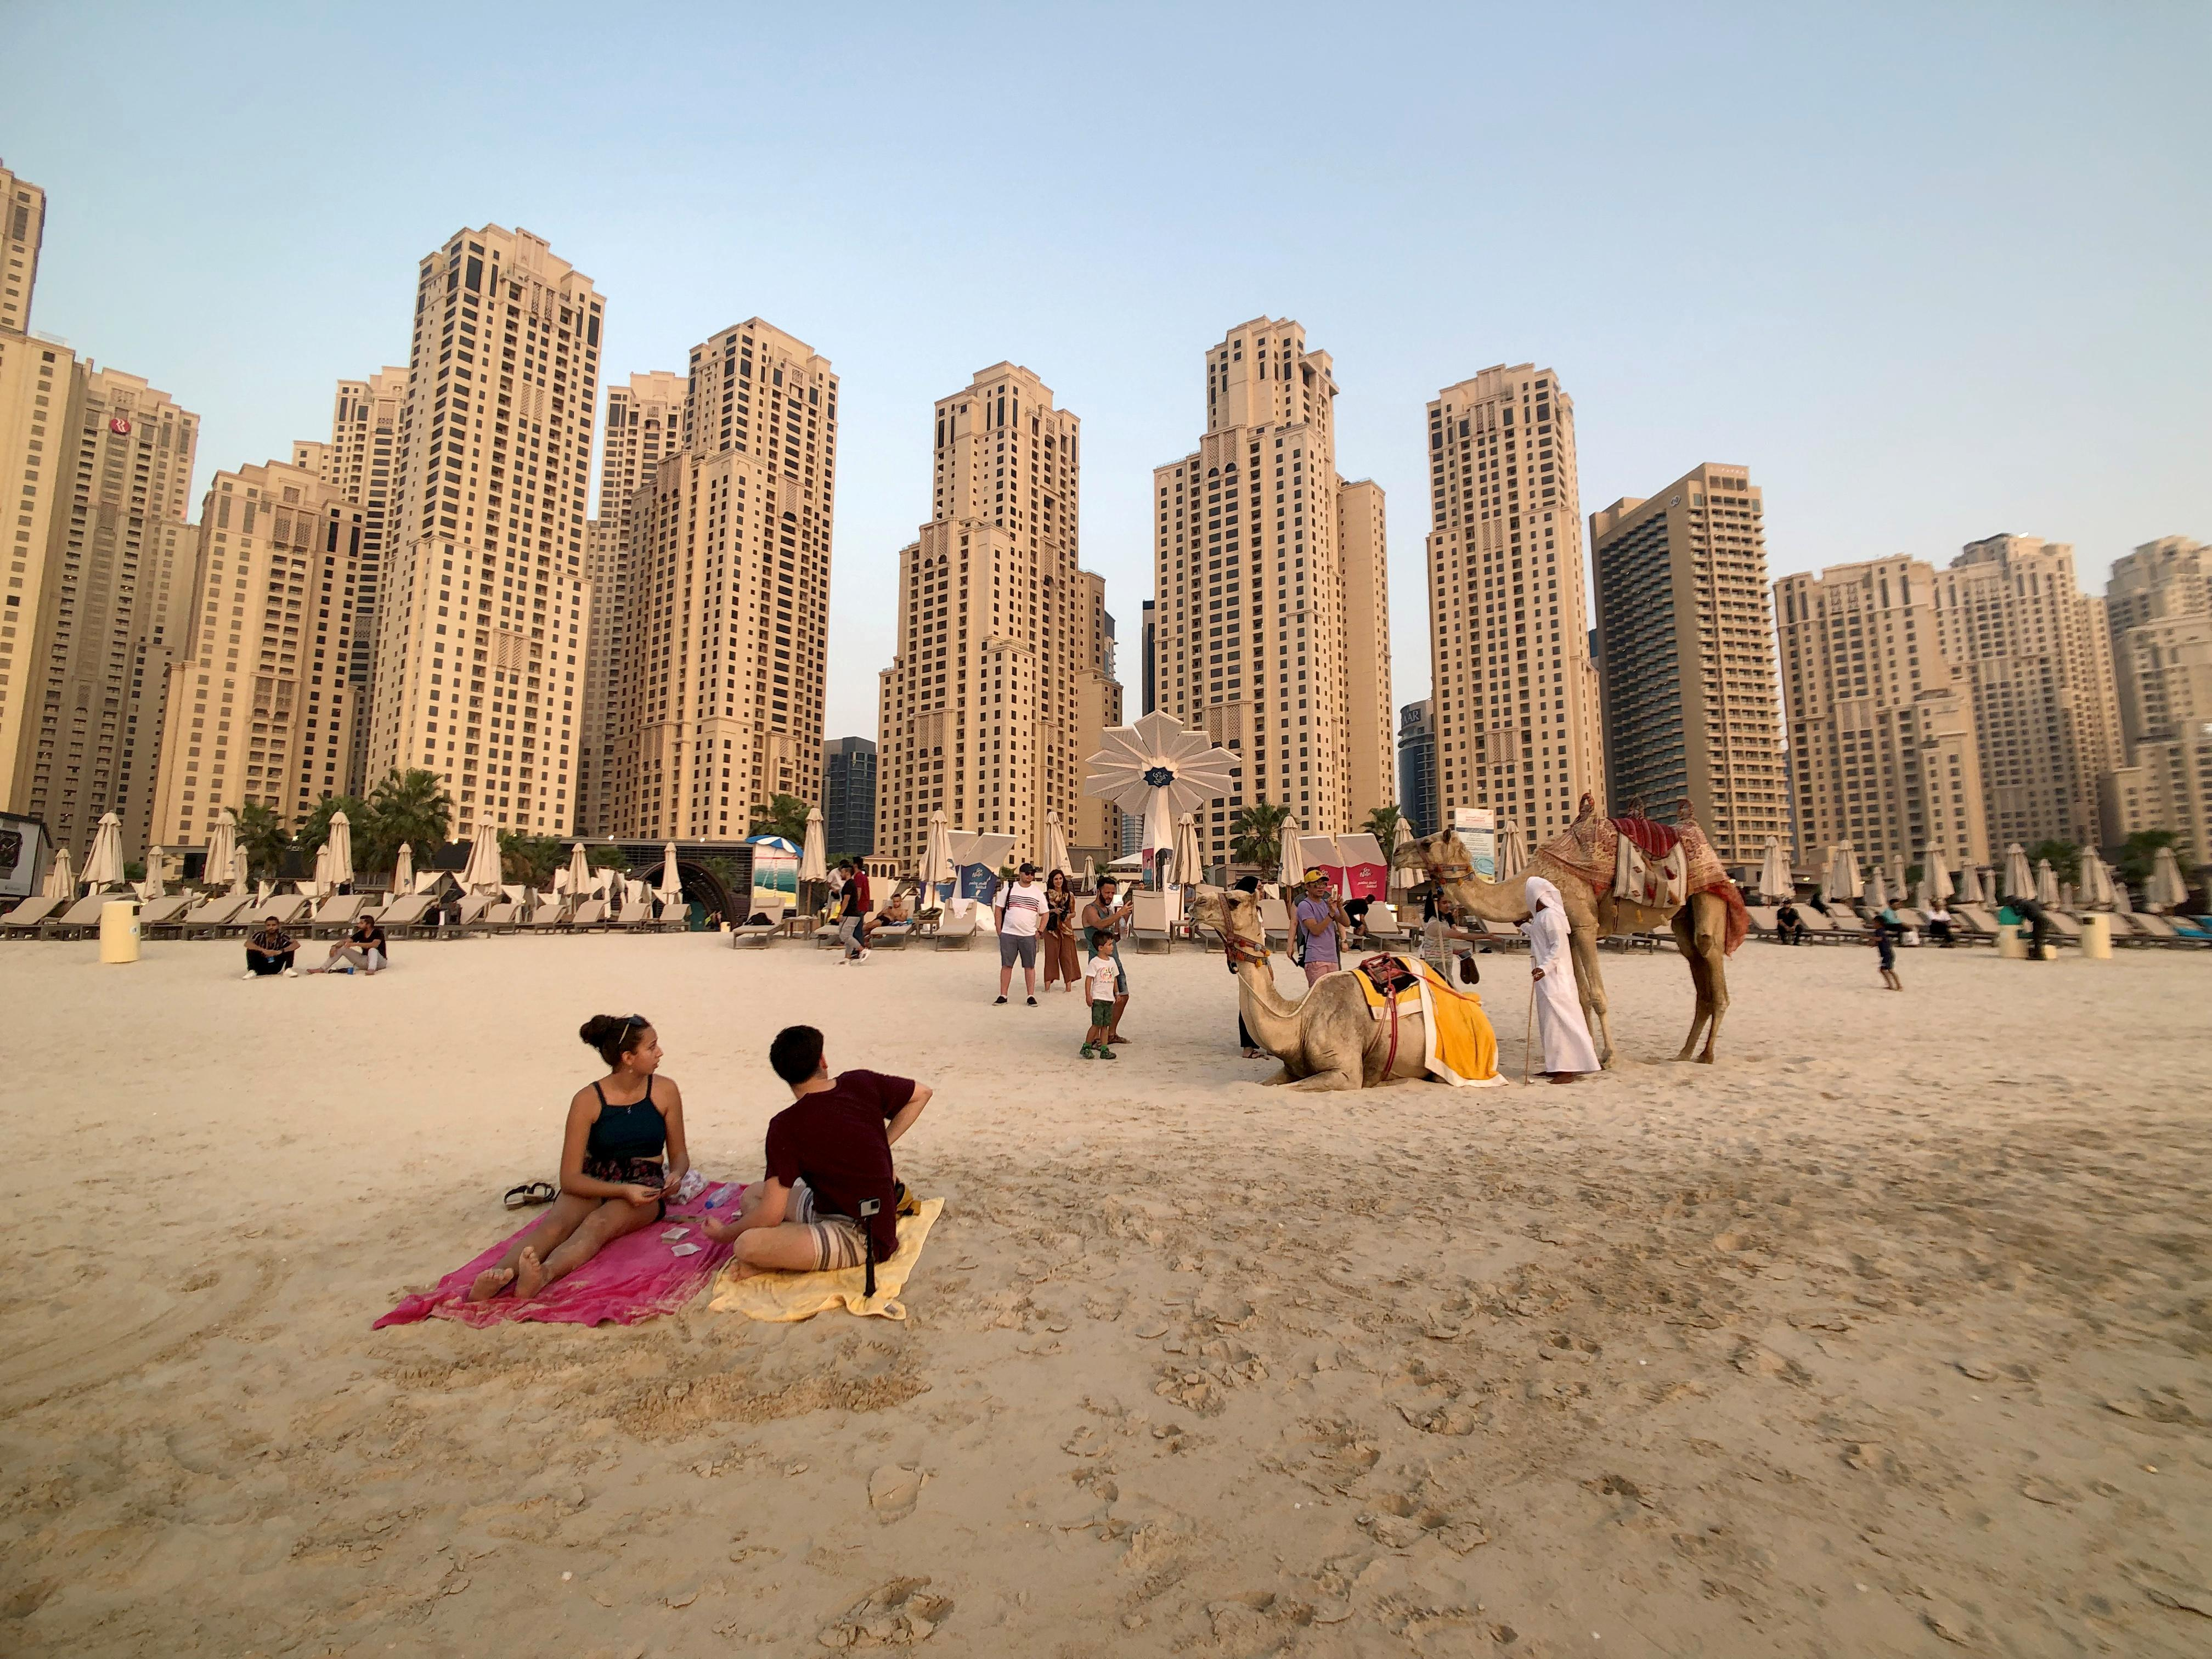 Dubai registers 16.7 million tourists in 2019, Chinese visitors rise